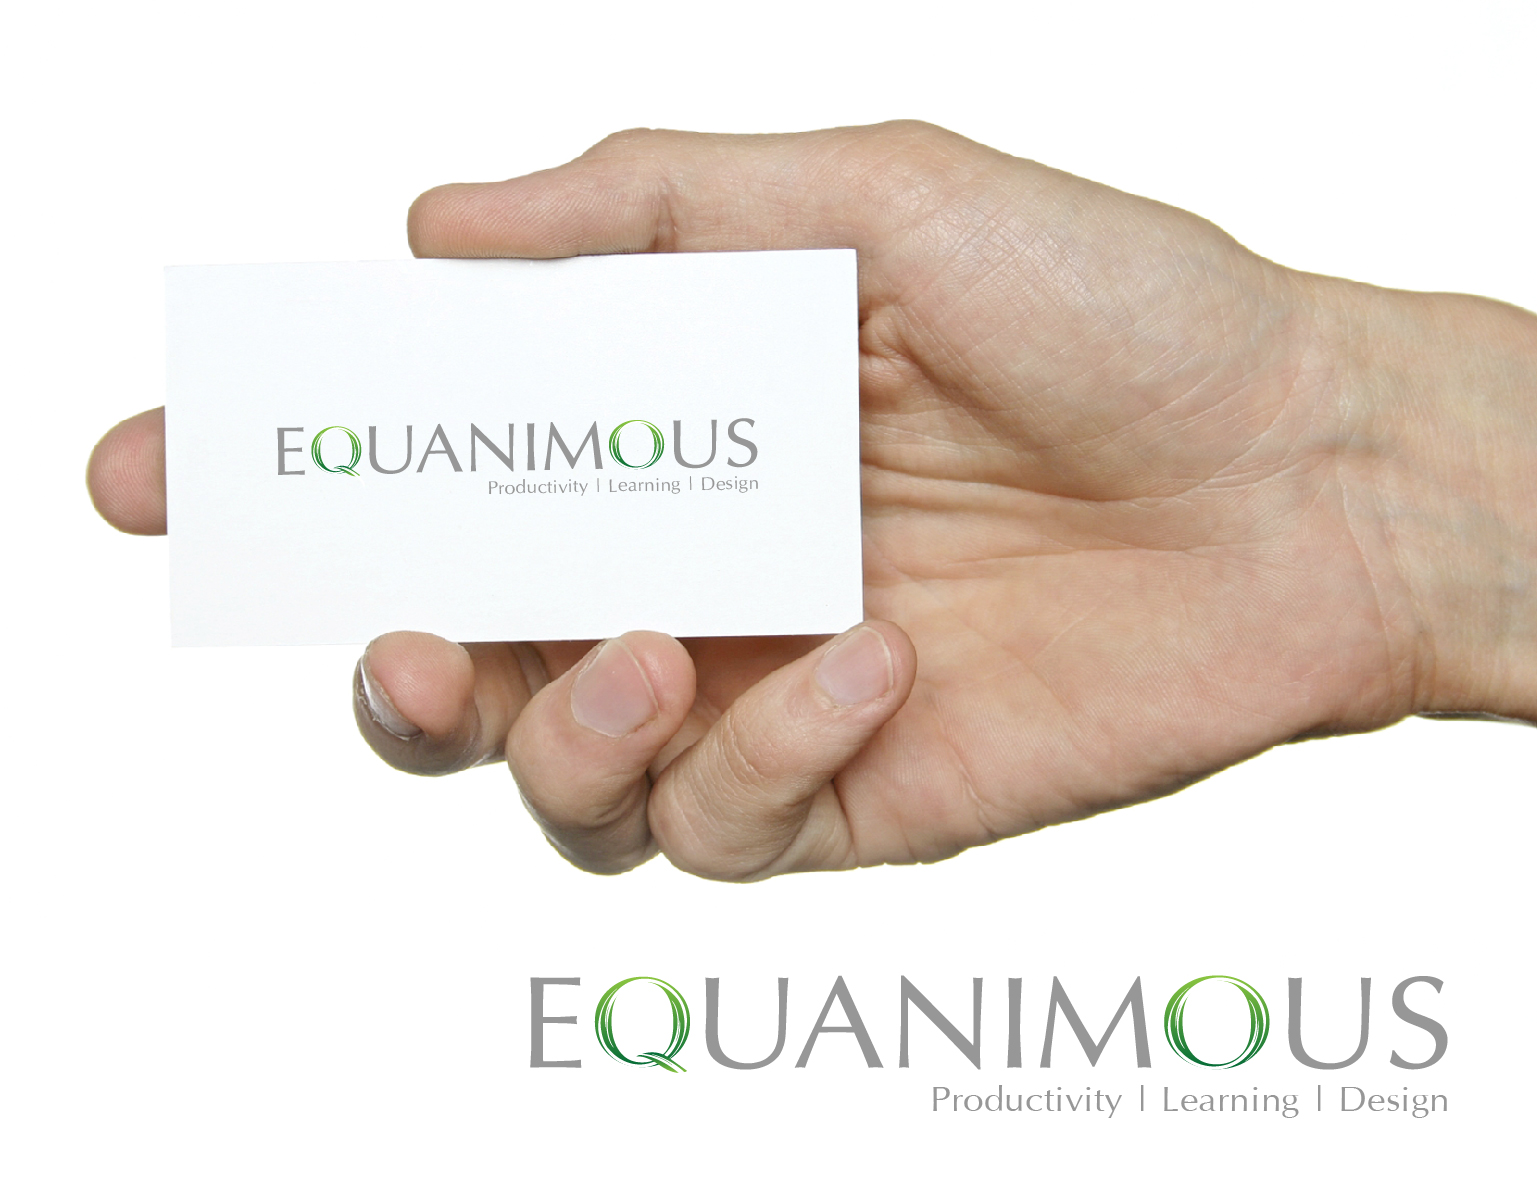 Logo Design by 3draw - Entry No. 559 in the Logo Design Contest Logo Design : EQUANIMOUS : Productivity | Learning | Design.